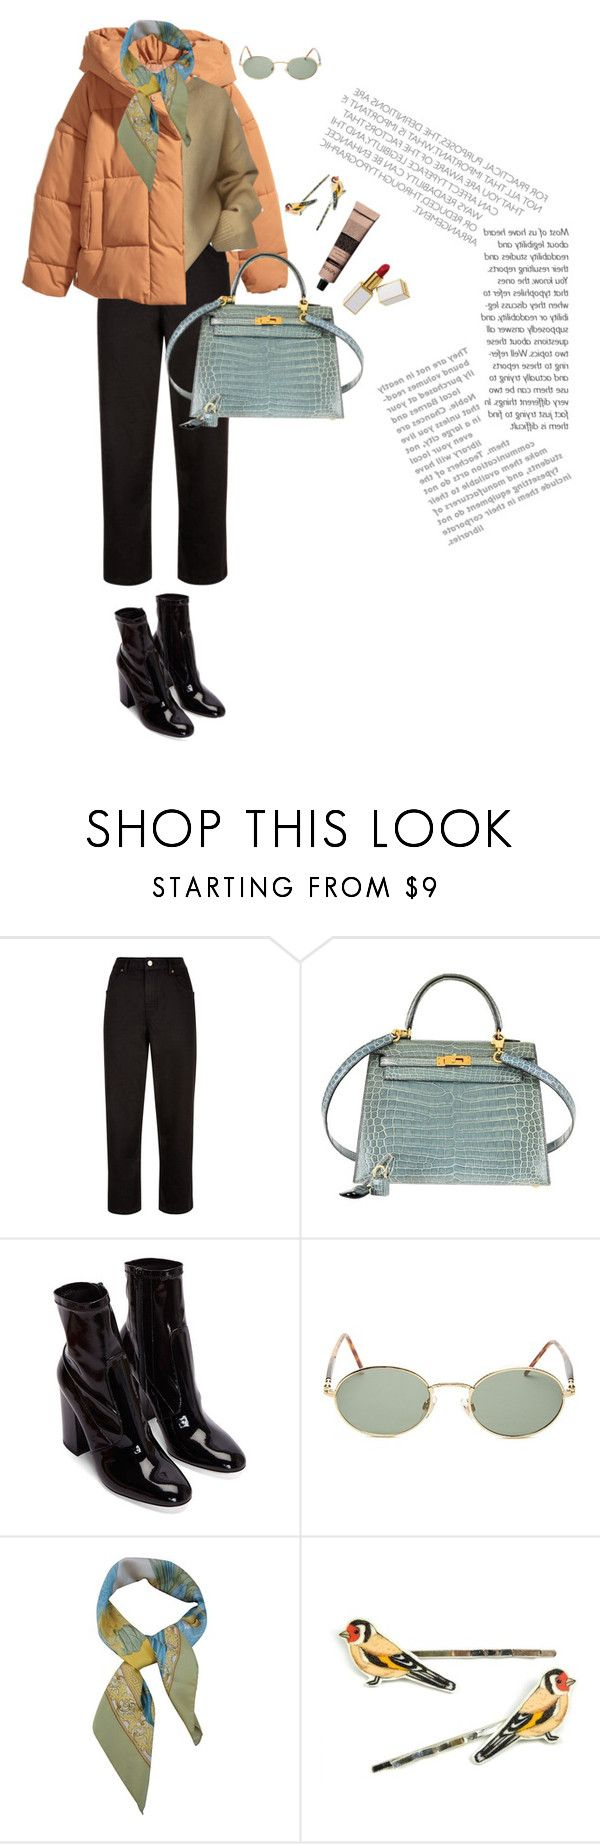 """""""Untitled #151"""" by palina-parker ❤ liked on Polyvore featuring Jaeger, Hermès, Forever 21, Salvatore Ferragamo, Layla Amber and Aesop"""